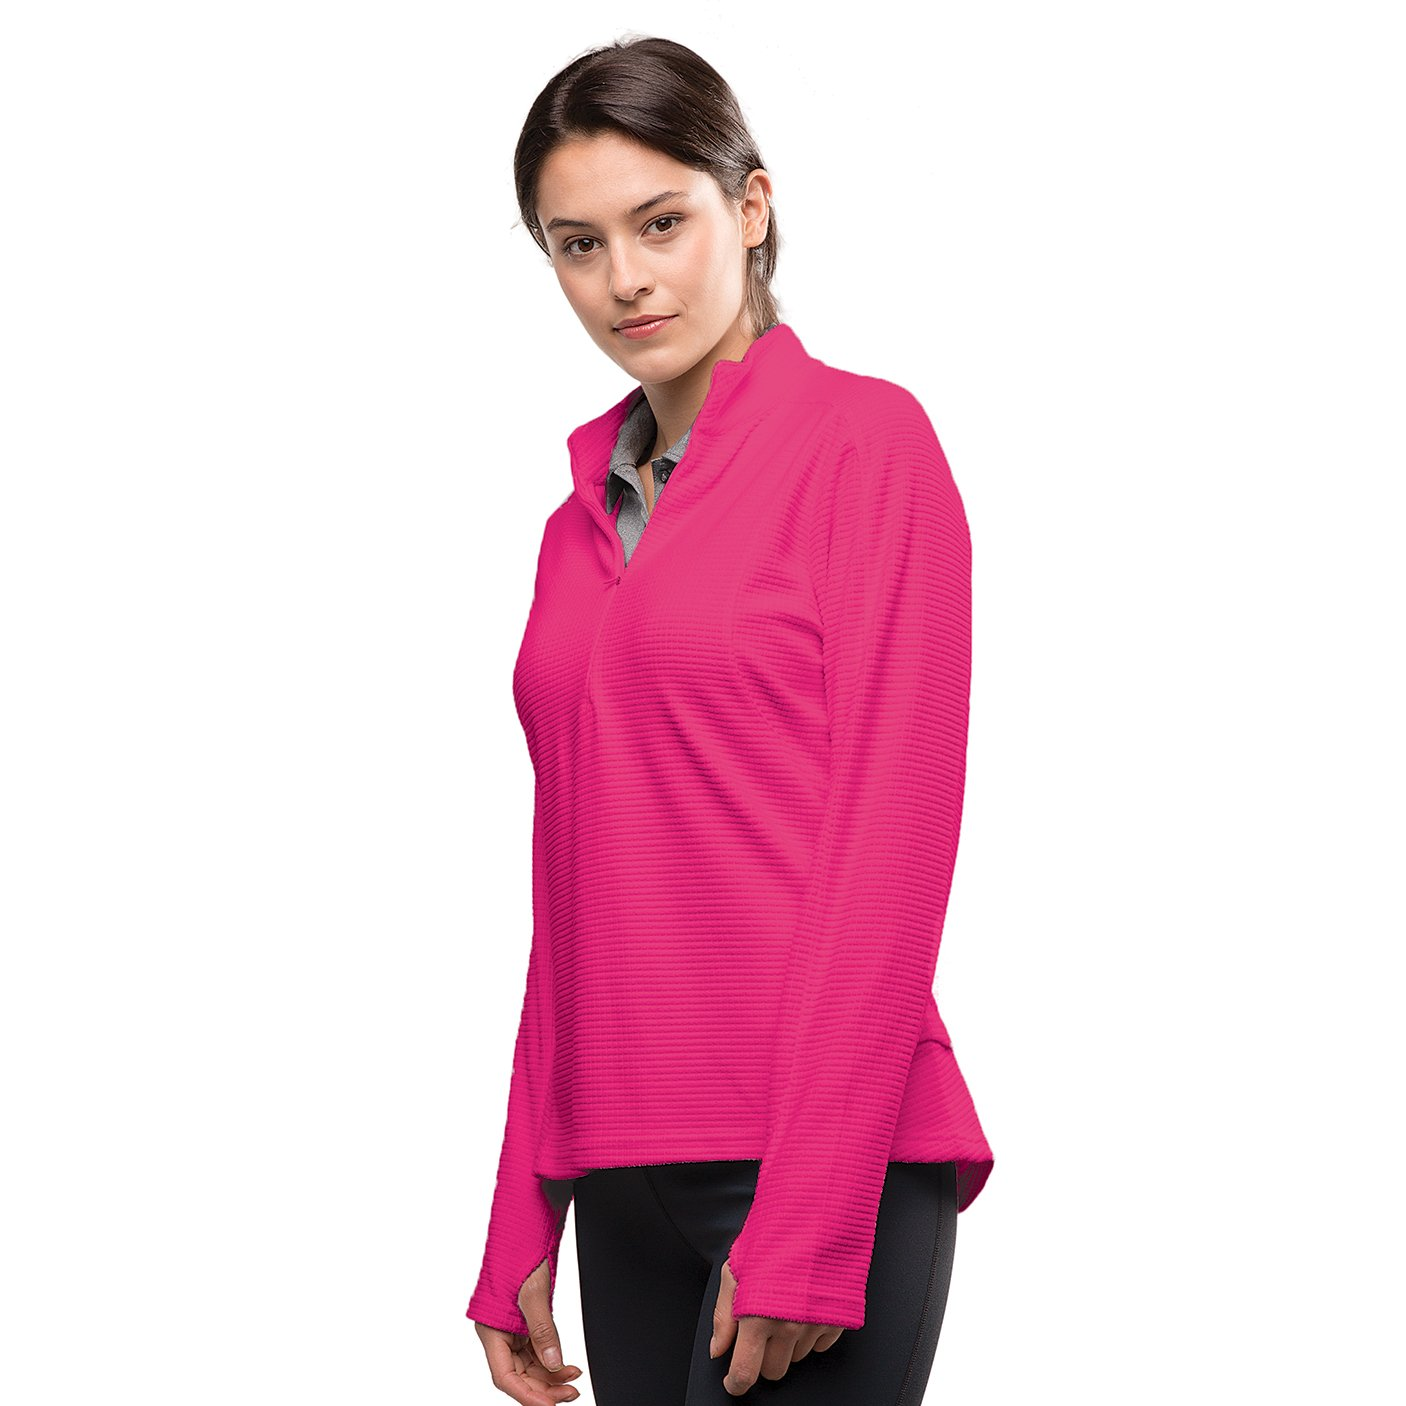 Levelwear Multisport Long Sleeve Performance Tee